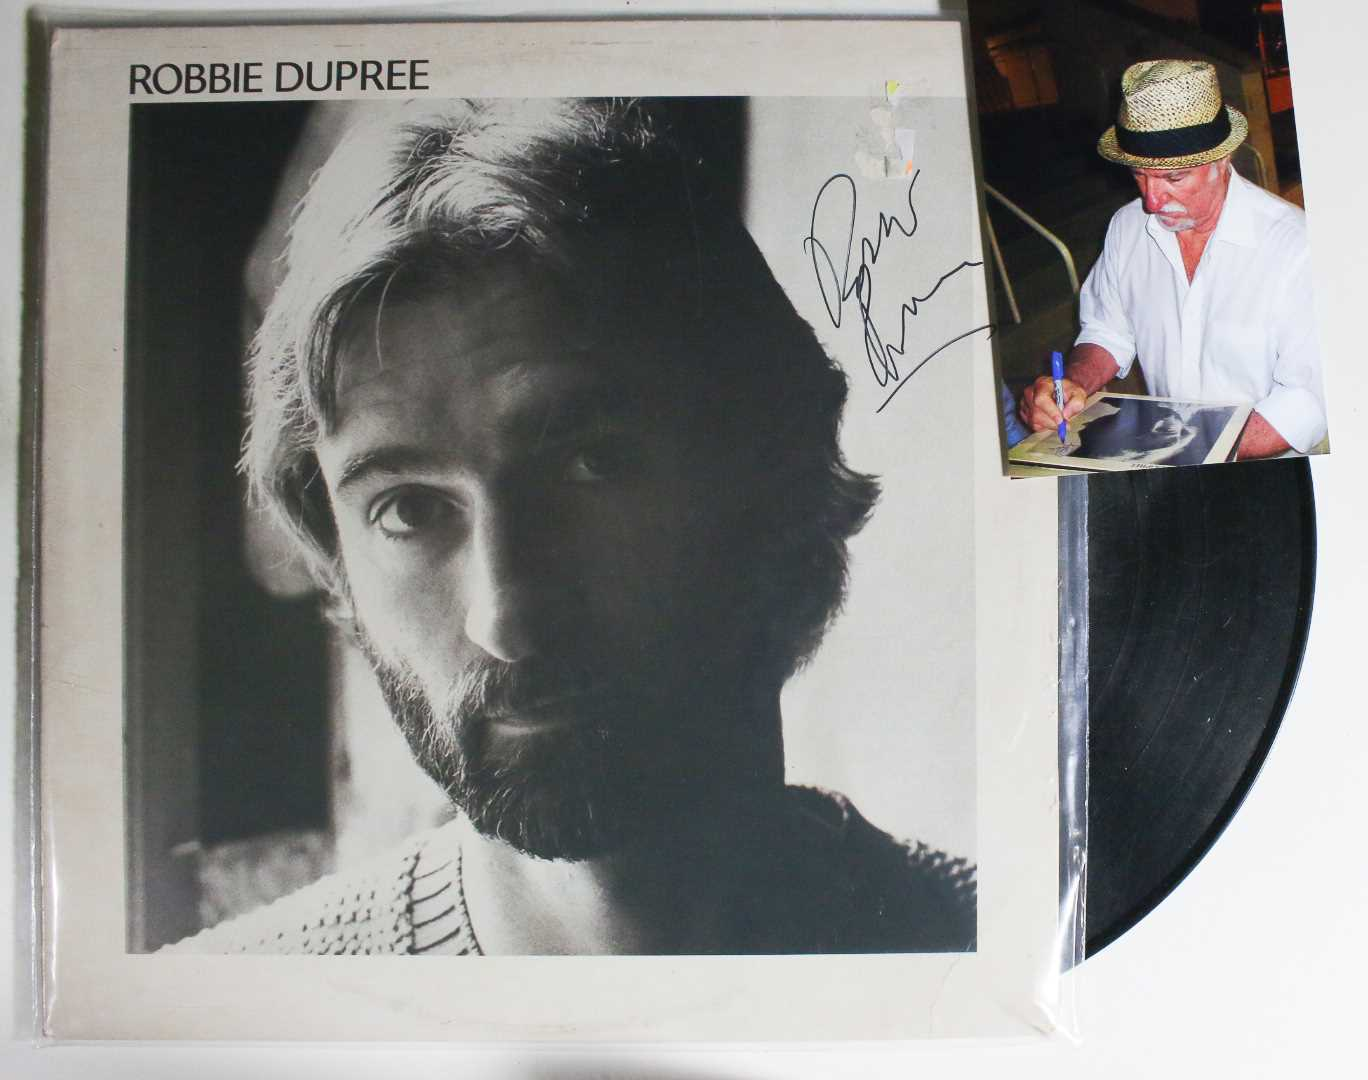 Primary image for Robbie Dupree Signed Autographed Record Album w/ Proof Photo